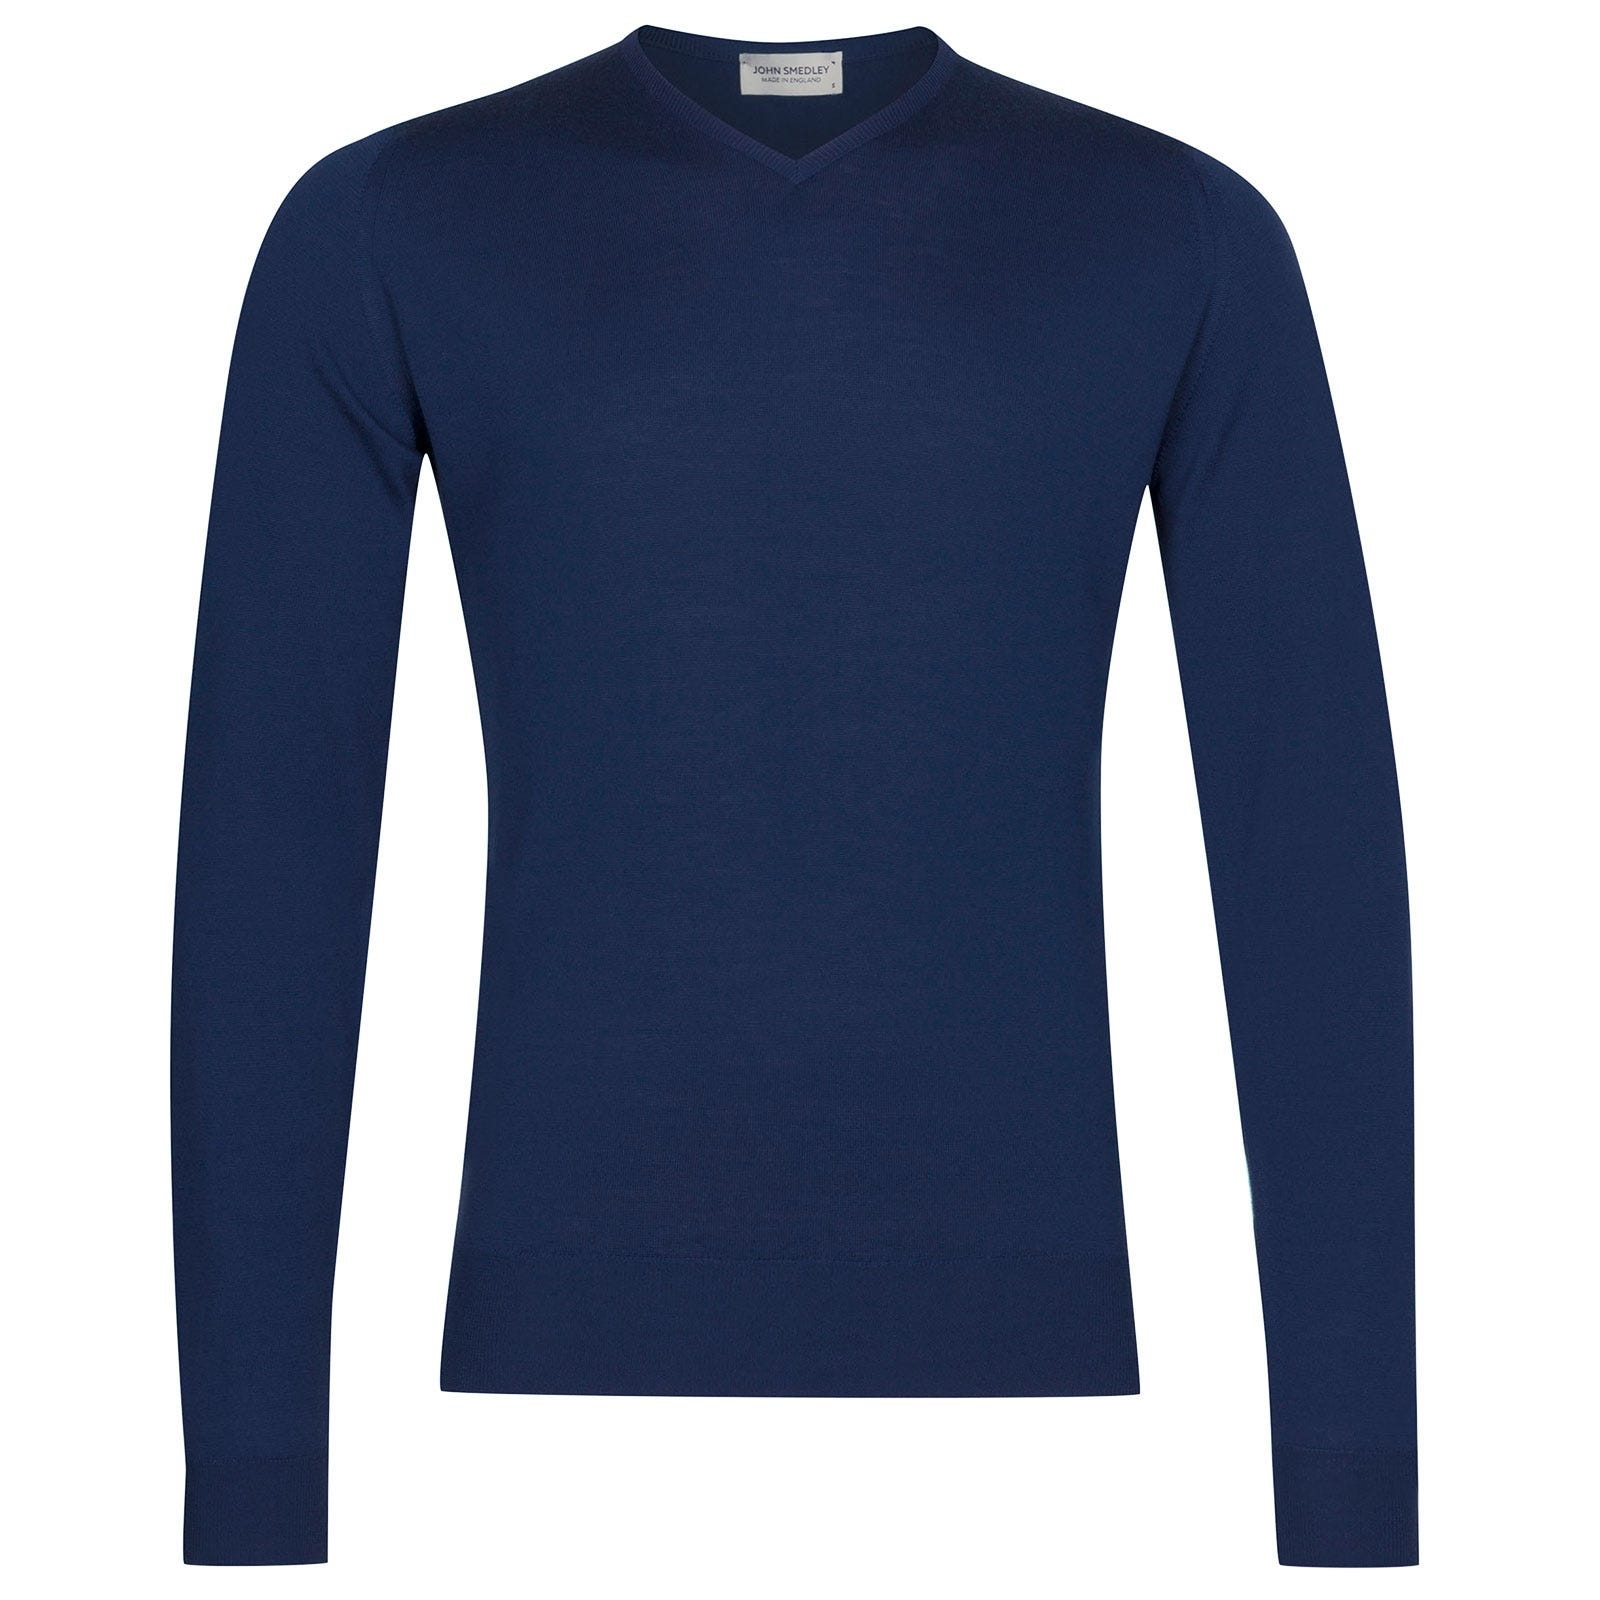 John Smedley Shipton Merino Wool Pullover in Magnetic Cobalt-L